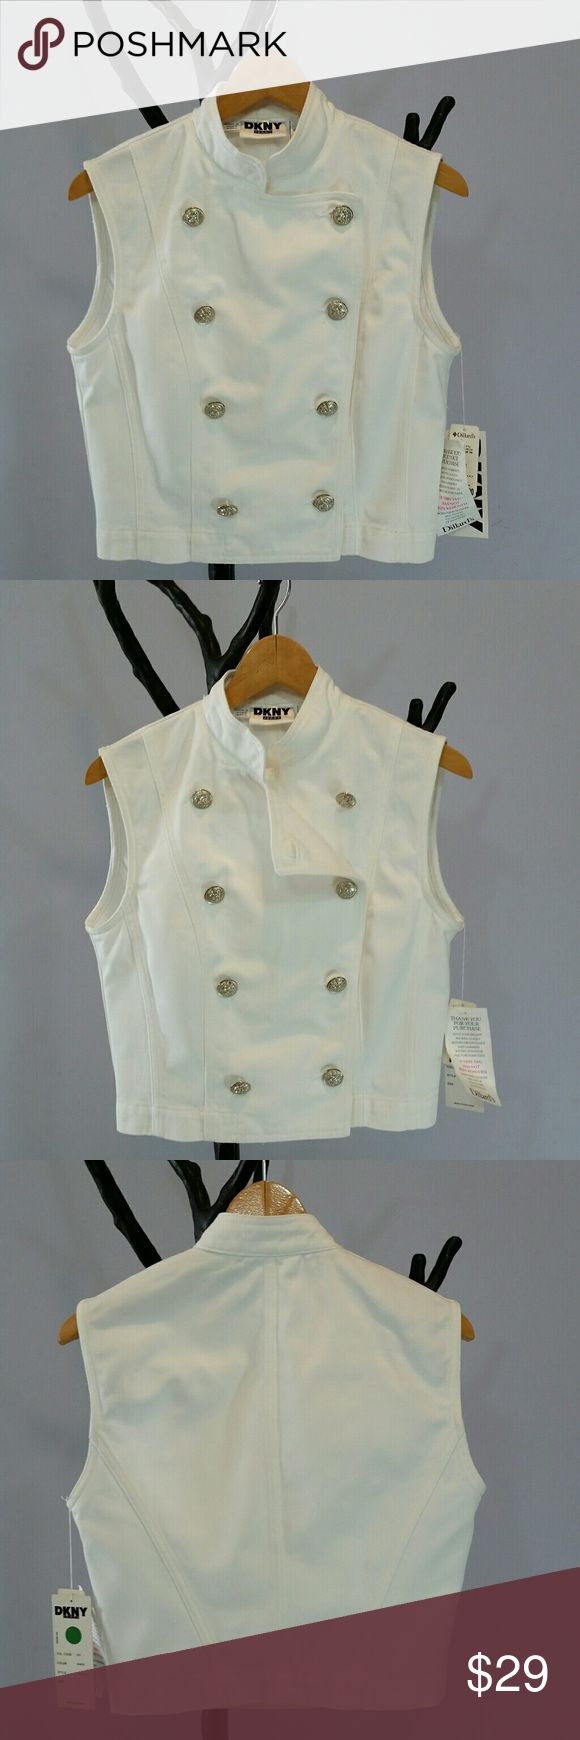 "DKNY White Denim Double-Breasted Vest Sz 8 NWT This is a DKNY White Cotton Denim Double-Breasted ""Captains"" Vest with 8 Great Silver Buttons marching down the front of it. Has a hint of a Steampunk look. A fun piece to layer over anything or wear it on its own! Happy to provide measurements/info/pics as needed.  Sz 8, NWT from a smoke free home. DKNY Jackets & Coats Vests"